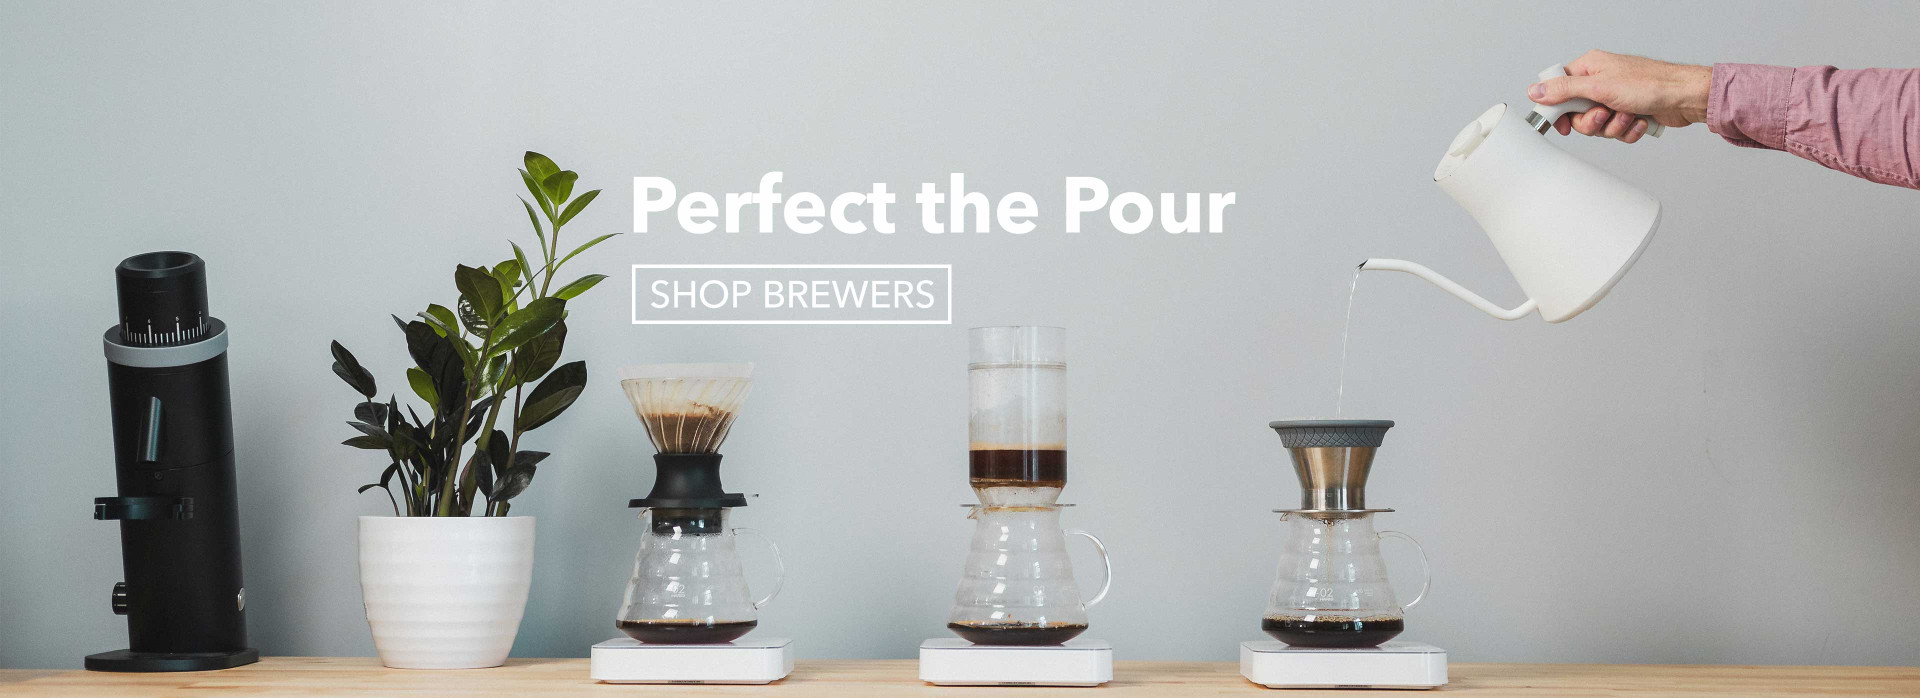 Shop pour over brewers